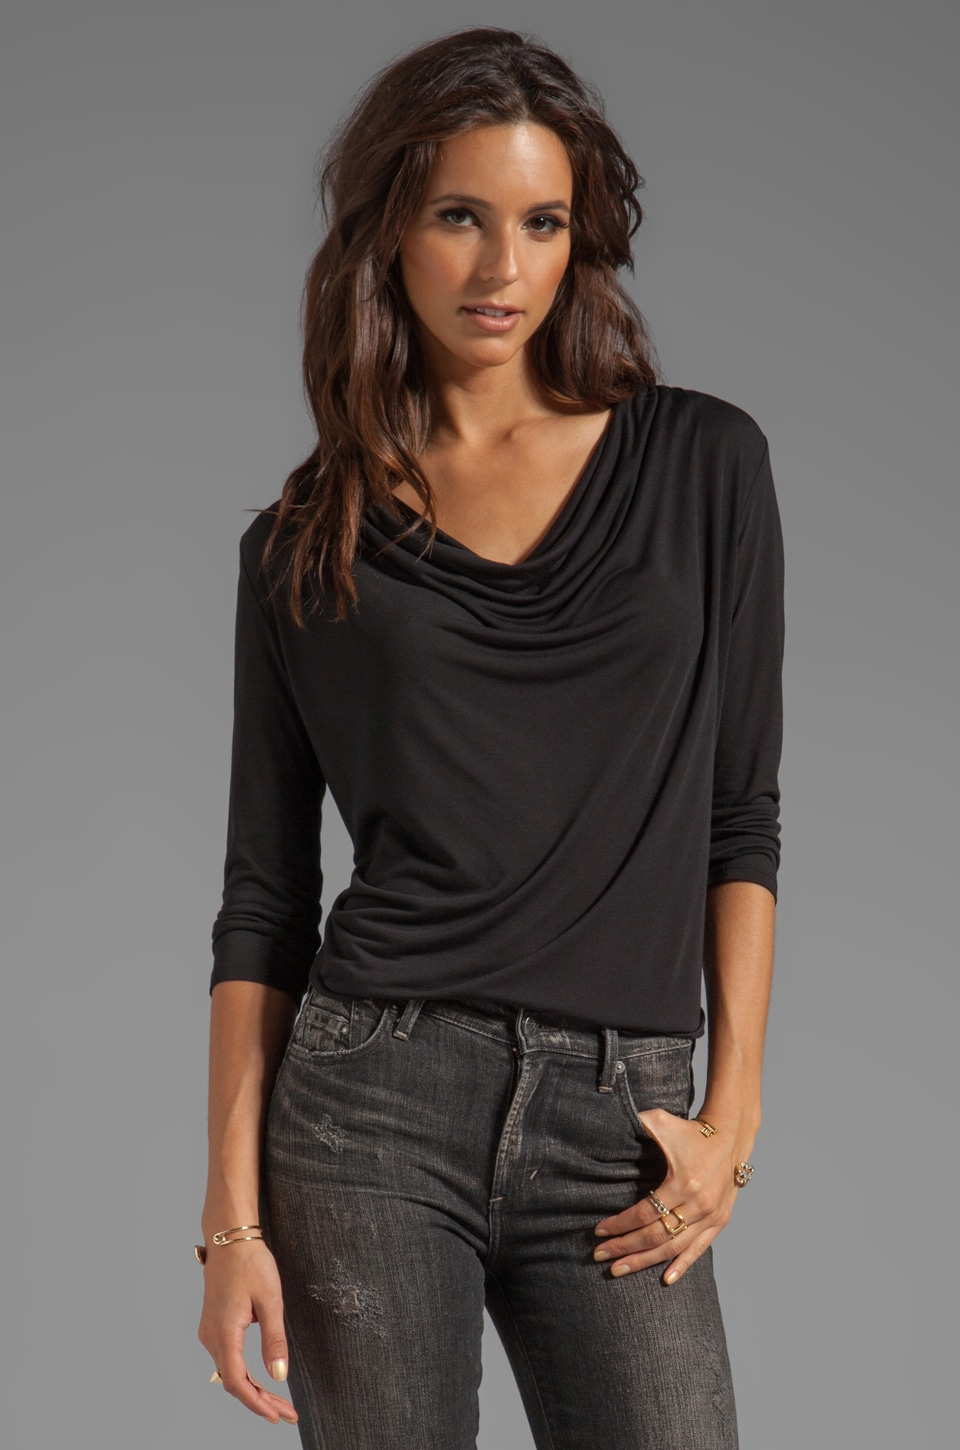 Lanston 3/4 Sleeve Drape Tee in Black